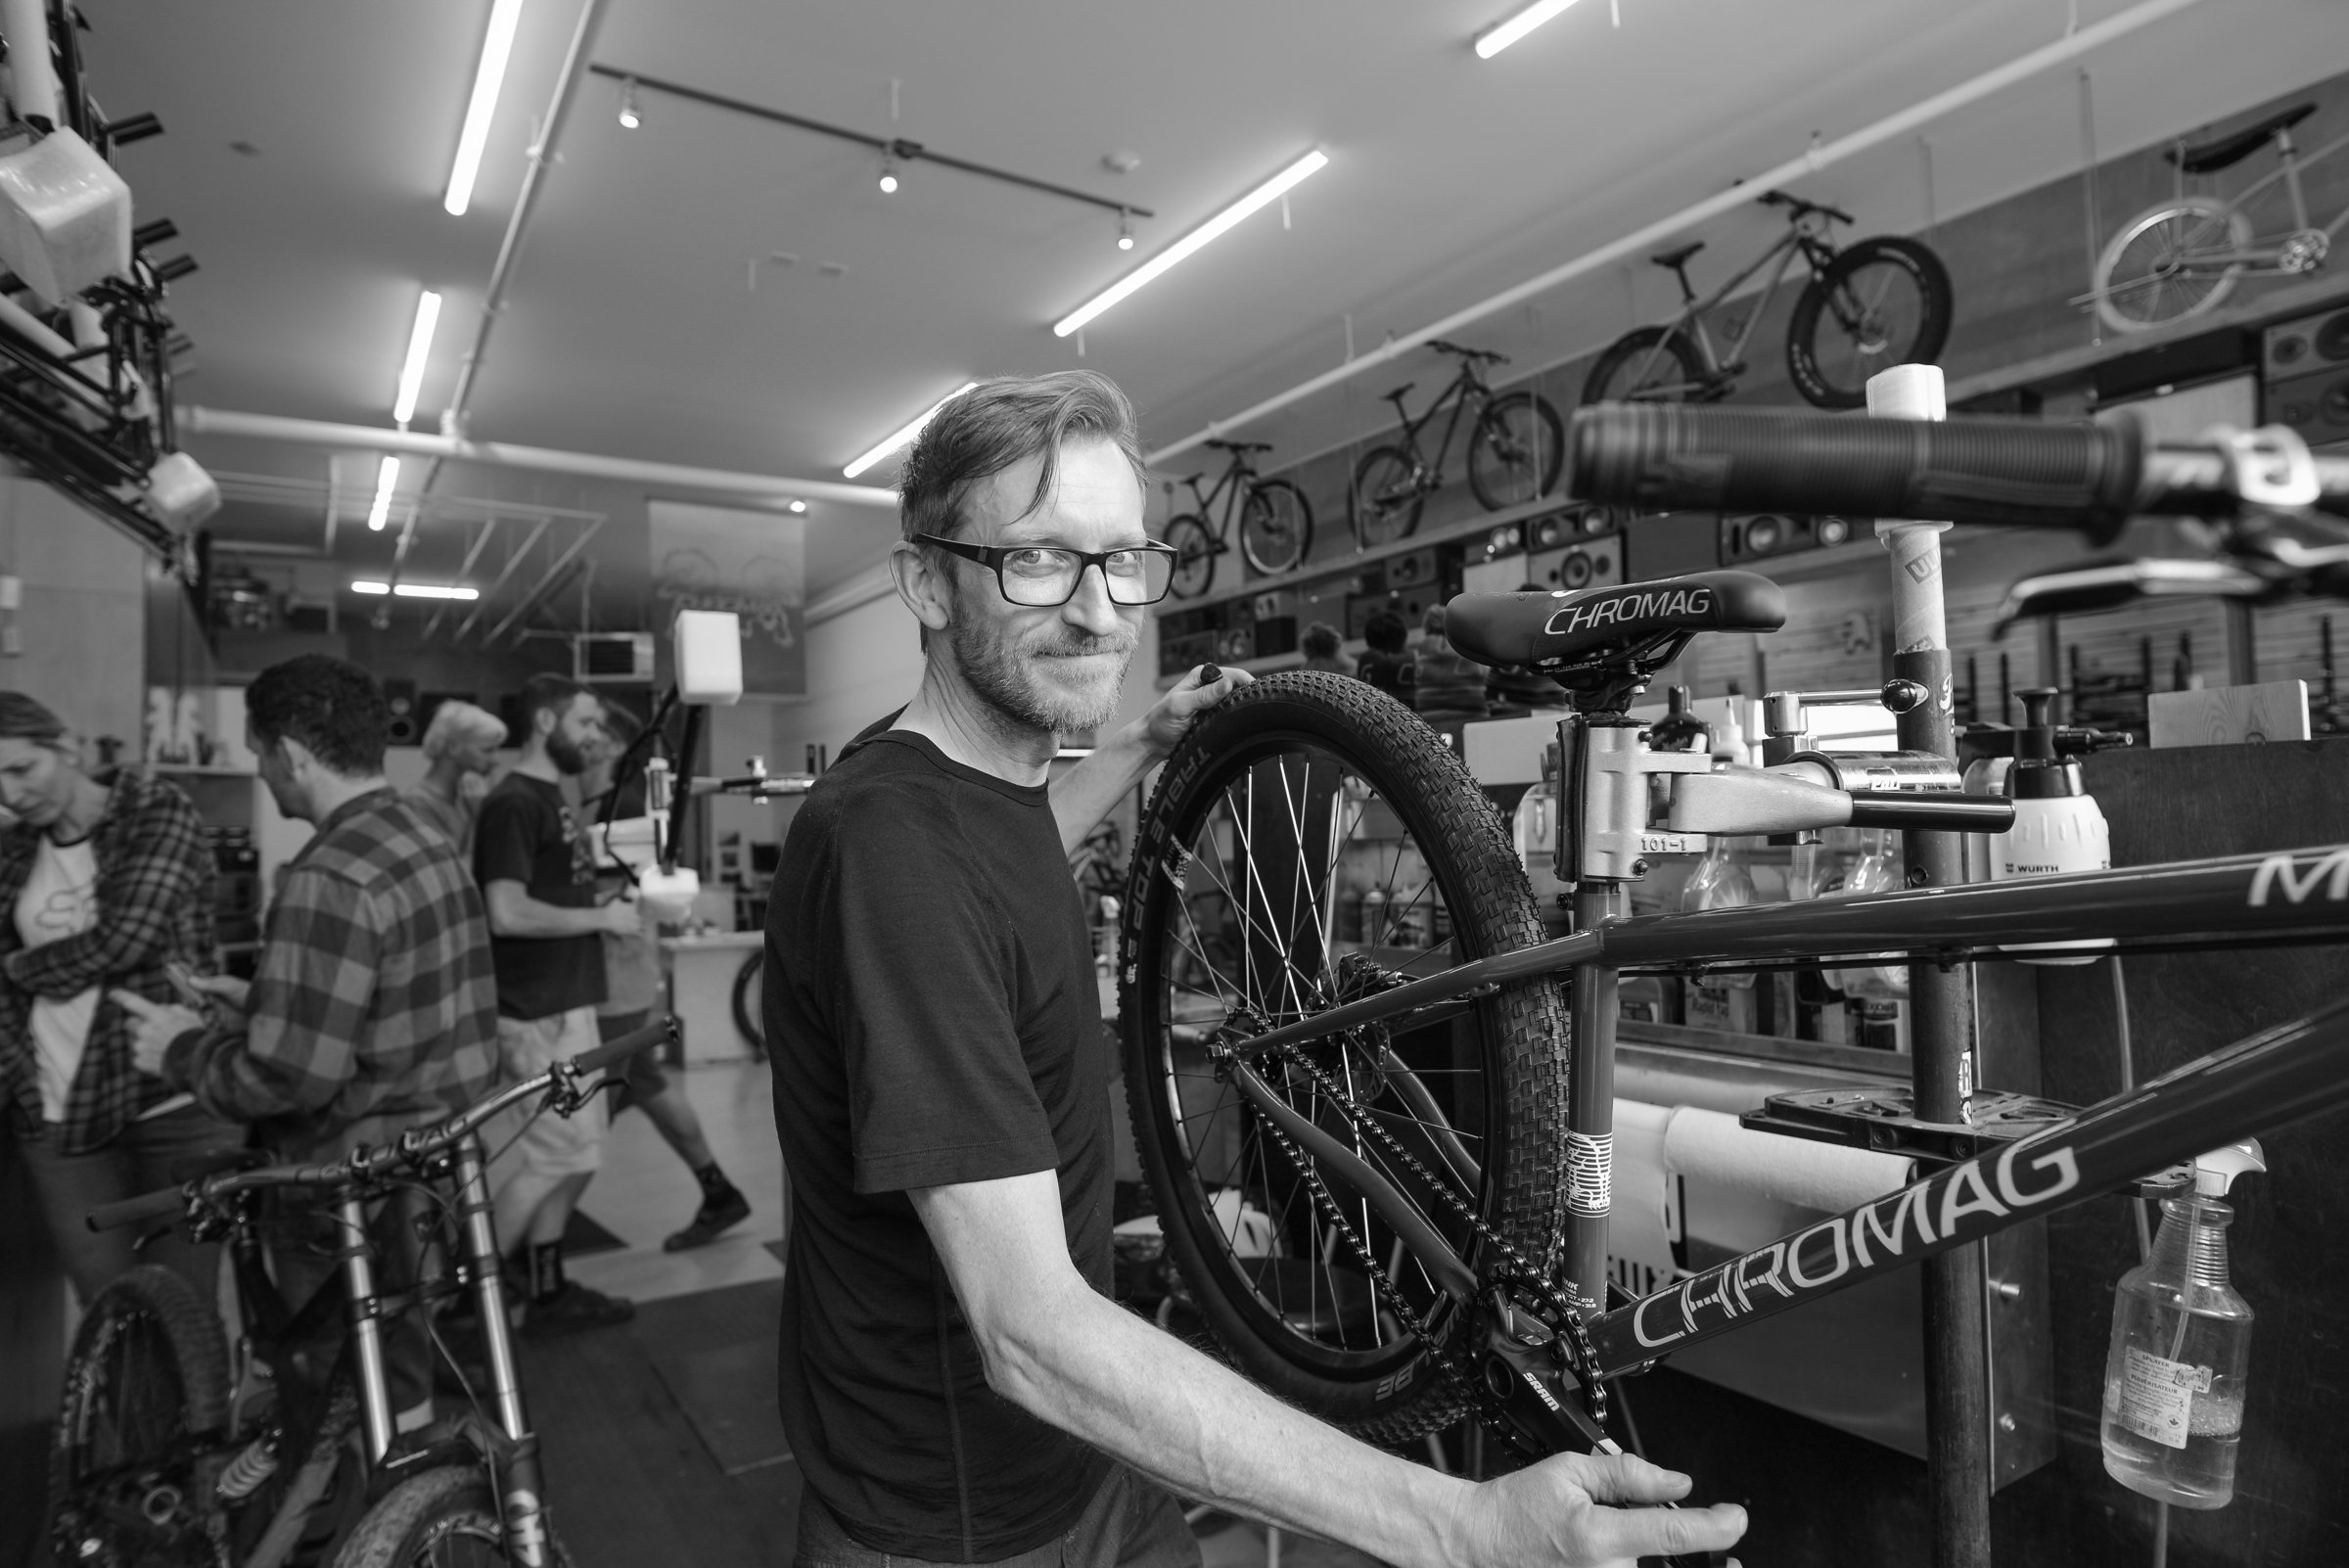 Chromag Staff - D'Arcy Burke is the mechanic